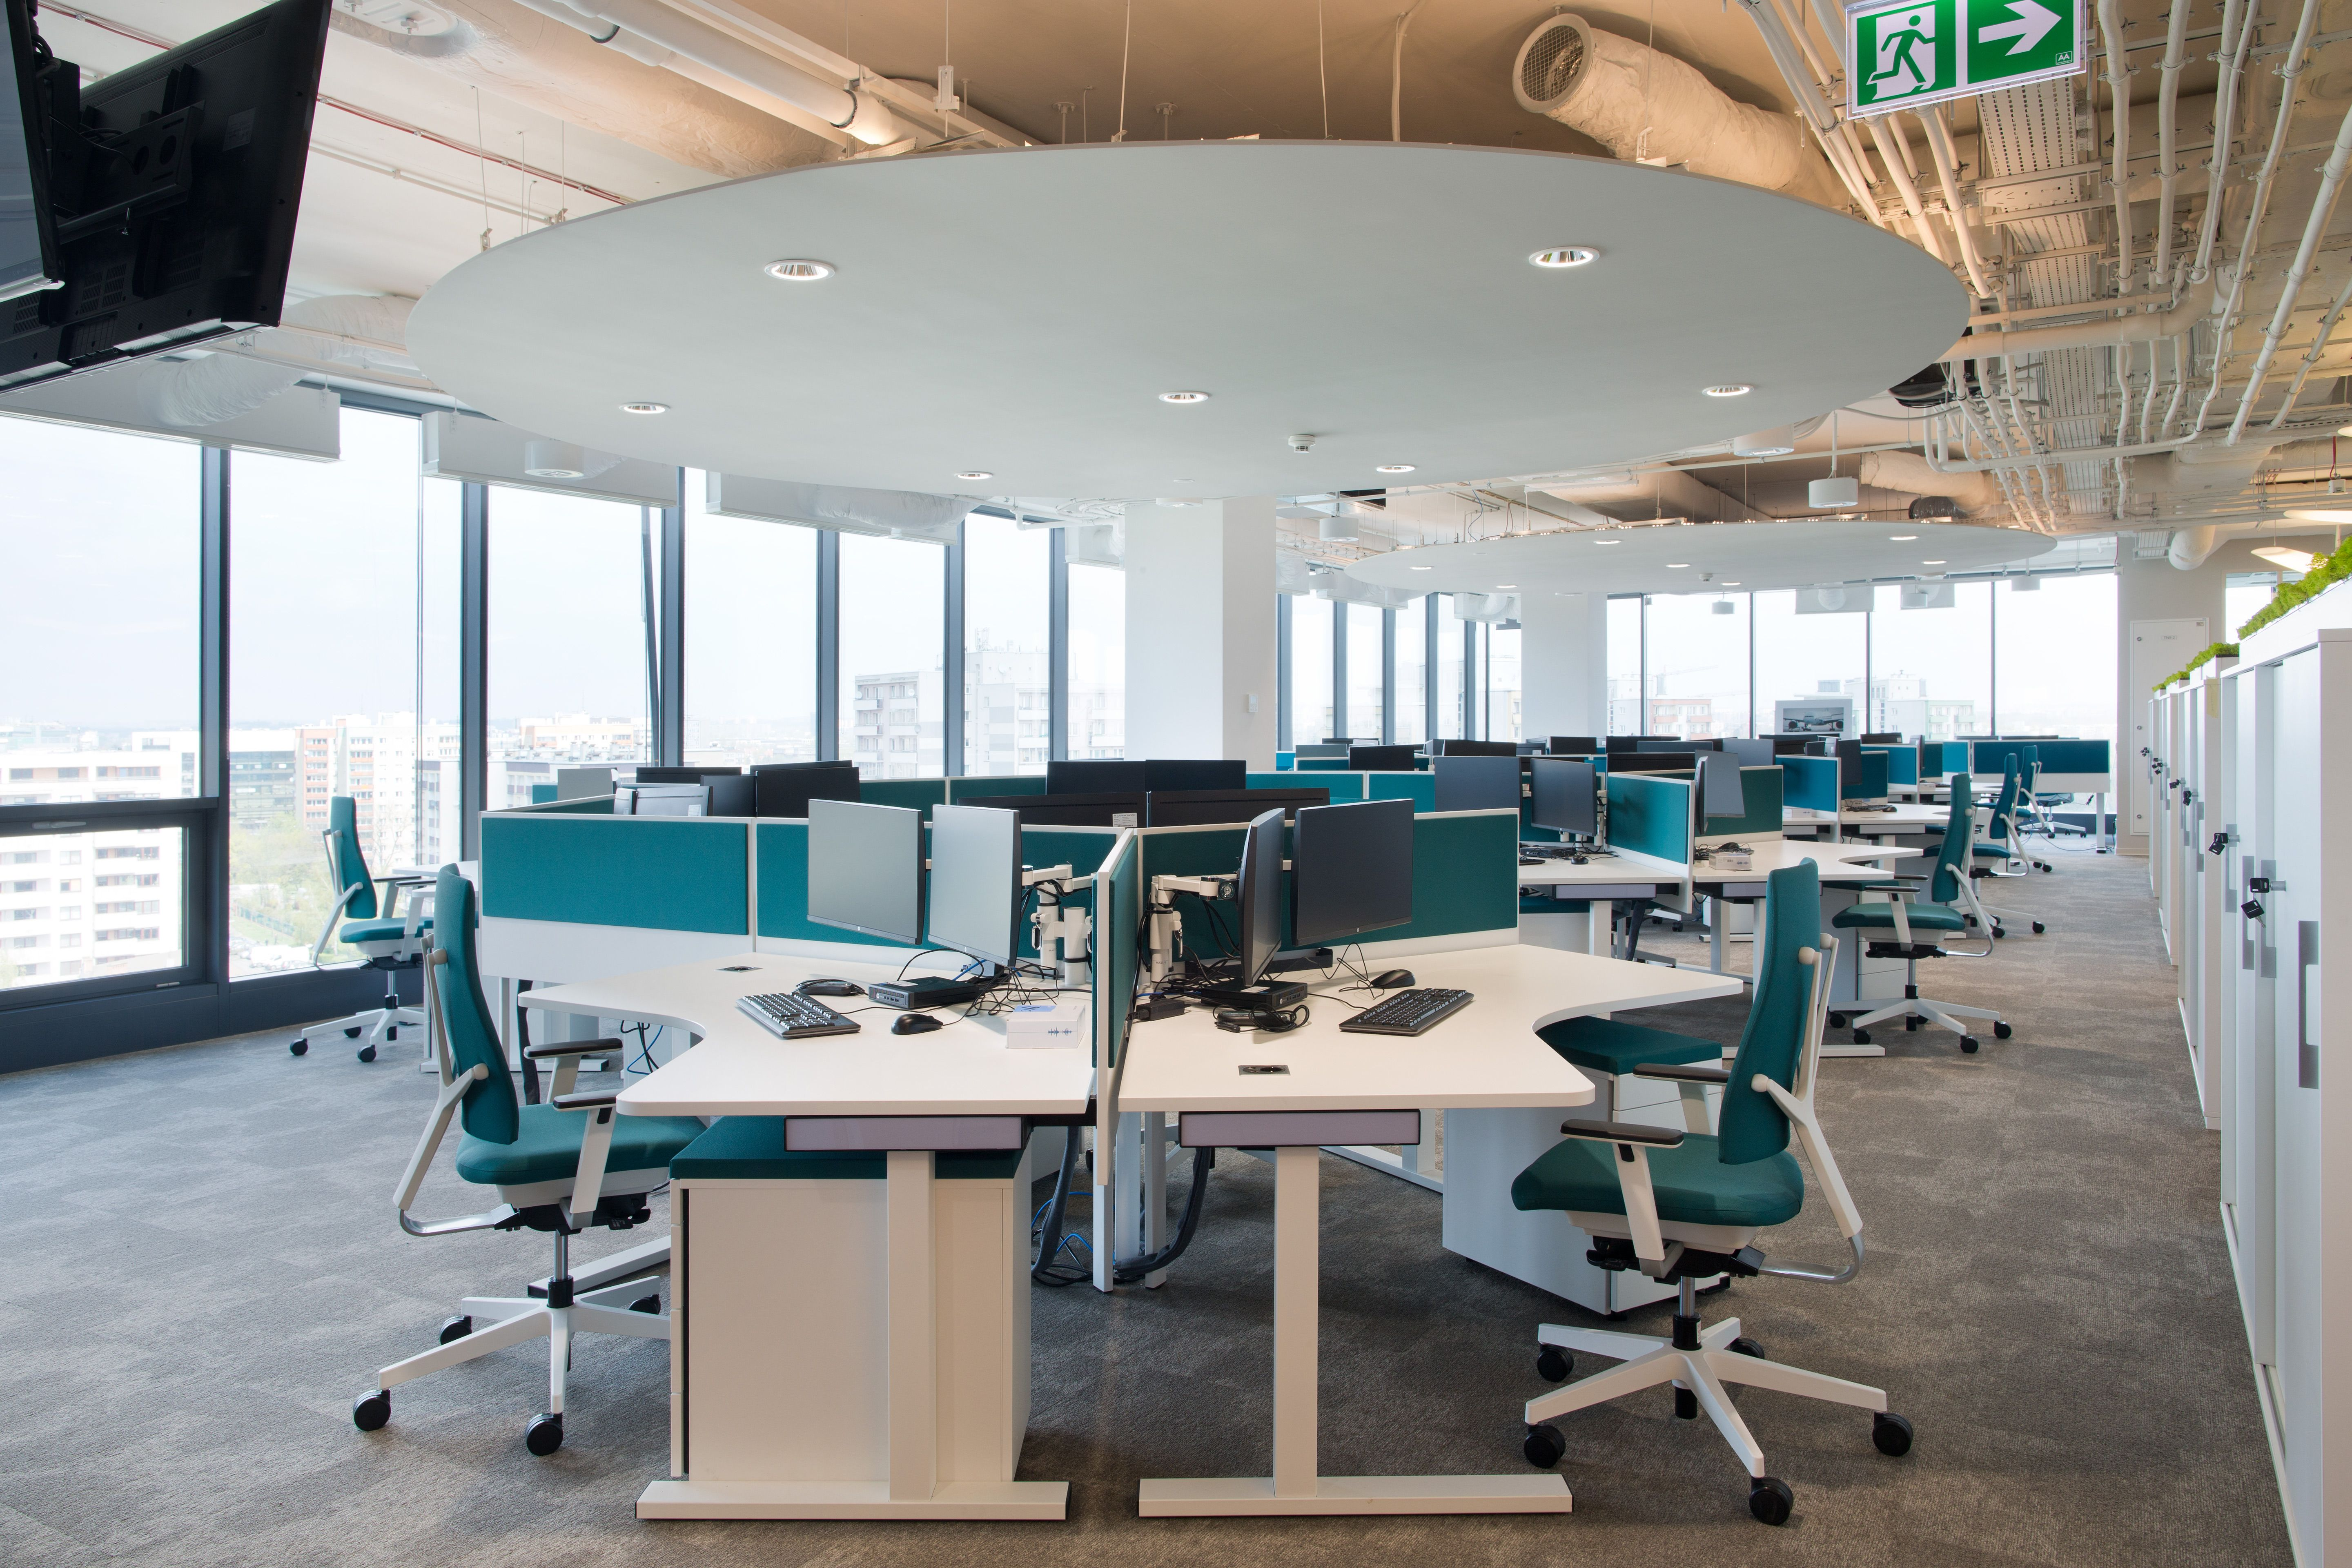 office offbeat interior design. Contemporary Office Office Offbeat Interior Design Hi Tech Products Furniture And O